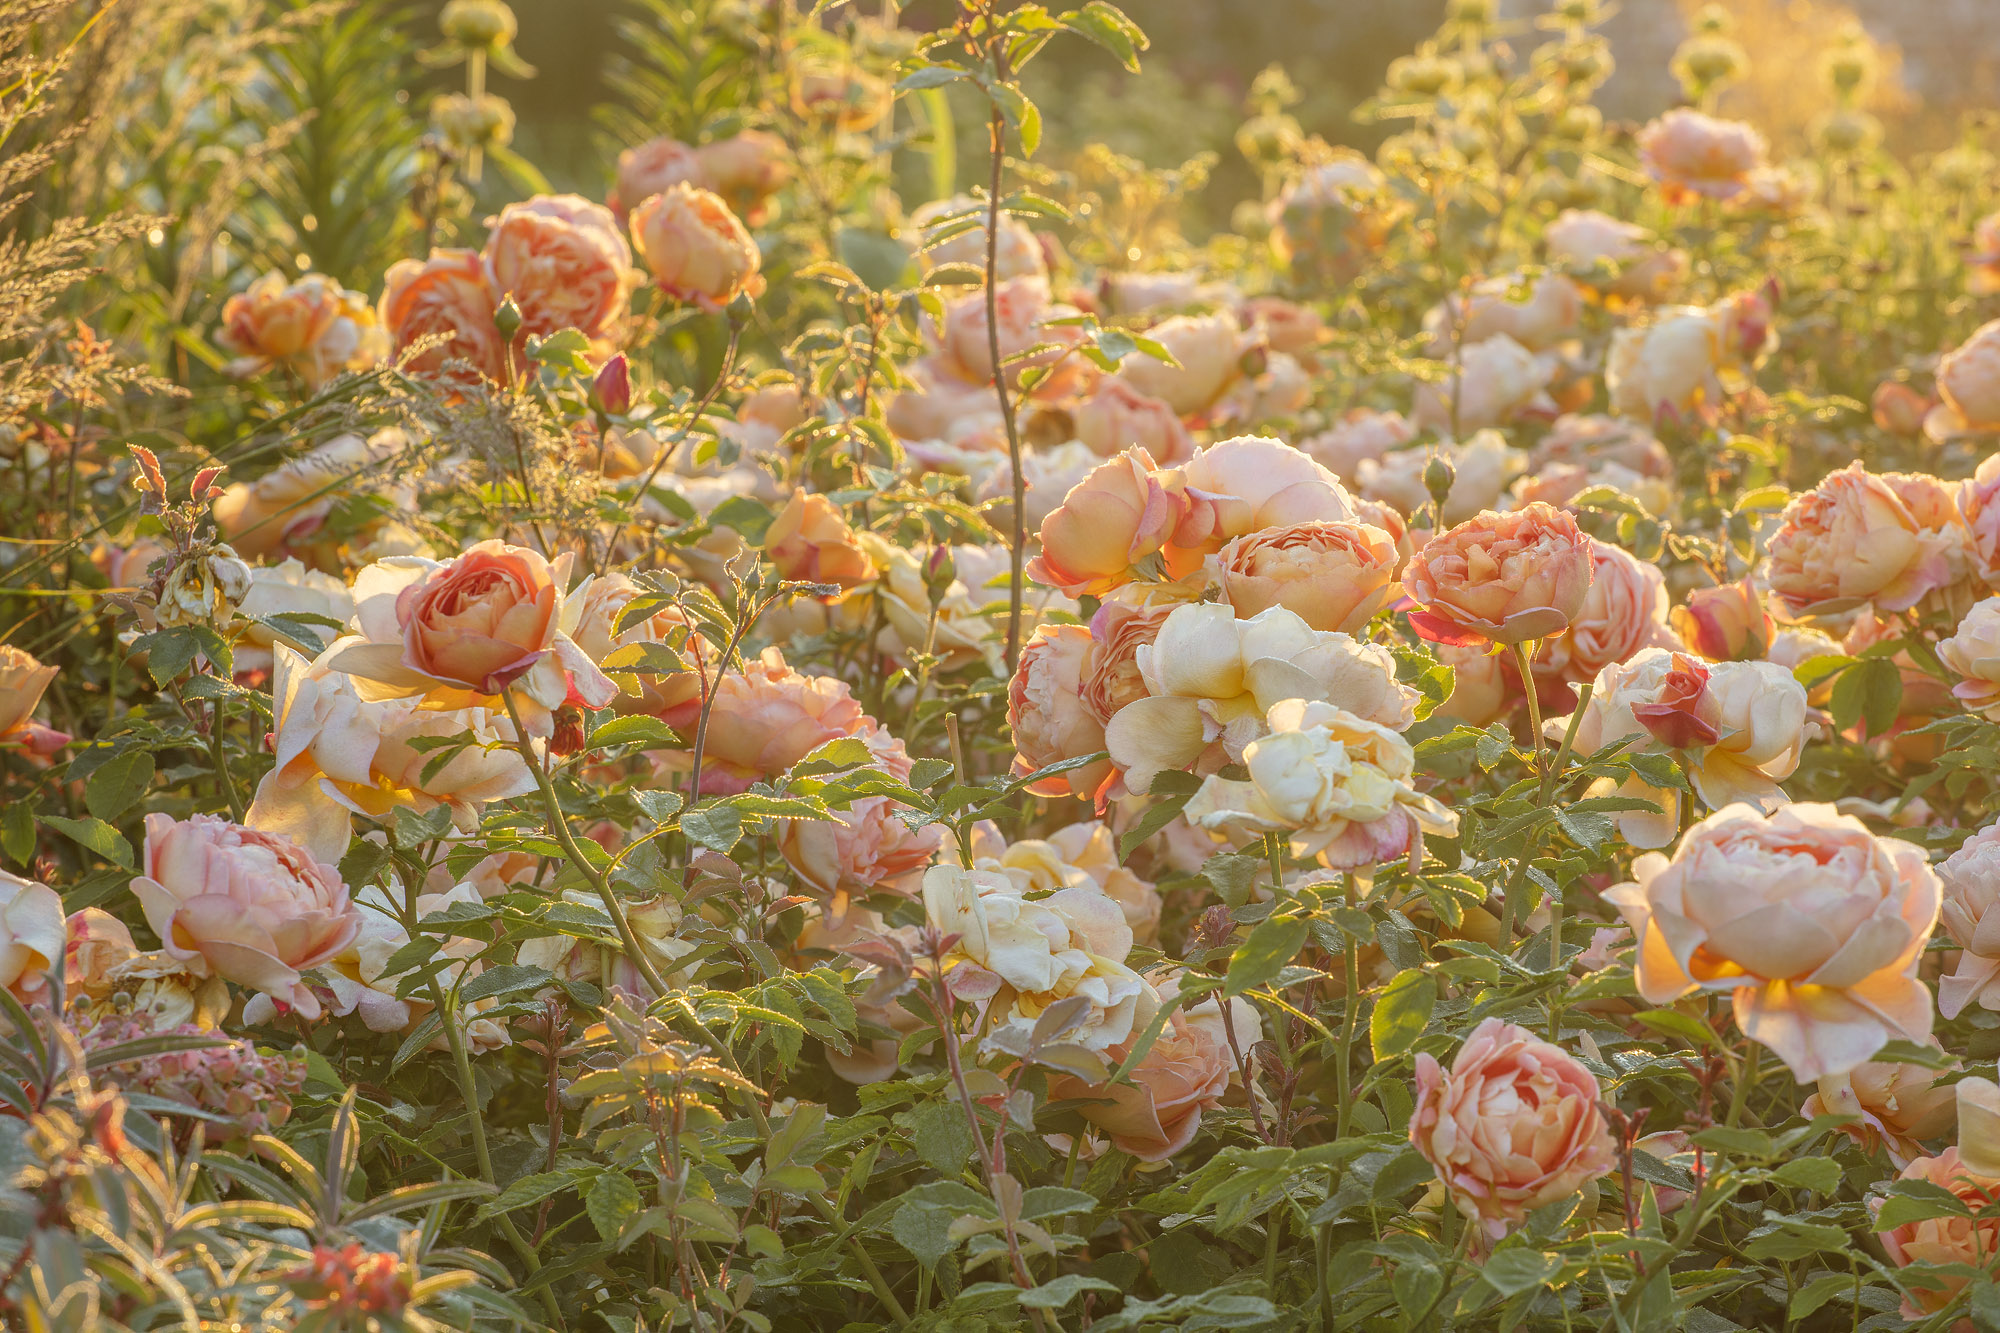 WYNYARD HALL, COUNTY DURHAM: ROSA LADY OF SHALLOT, DAVID, AUSTIN, ORNAGE, FLOWERS, FLOWERING, ROSES, FRAGRANT, SCENTED, PERFUMED, AROMATIC